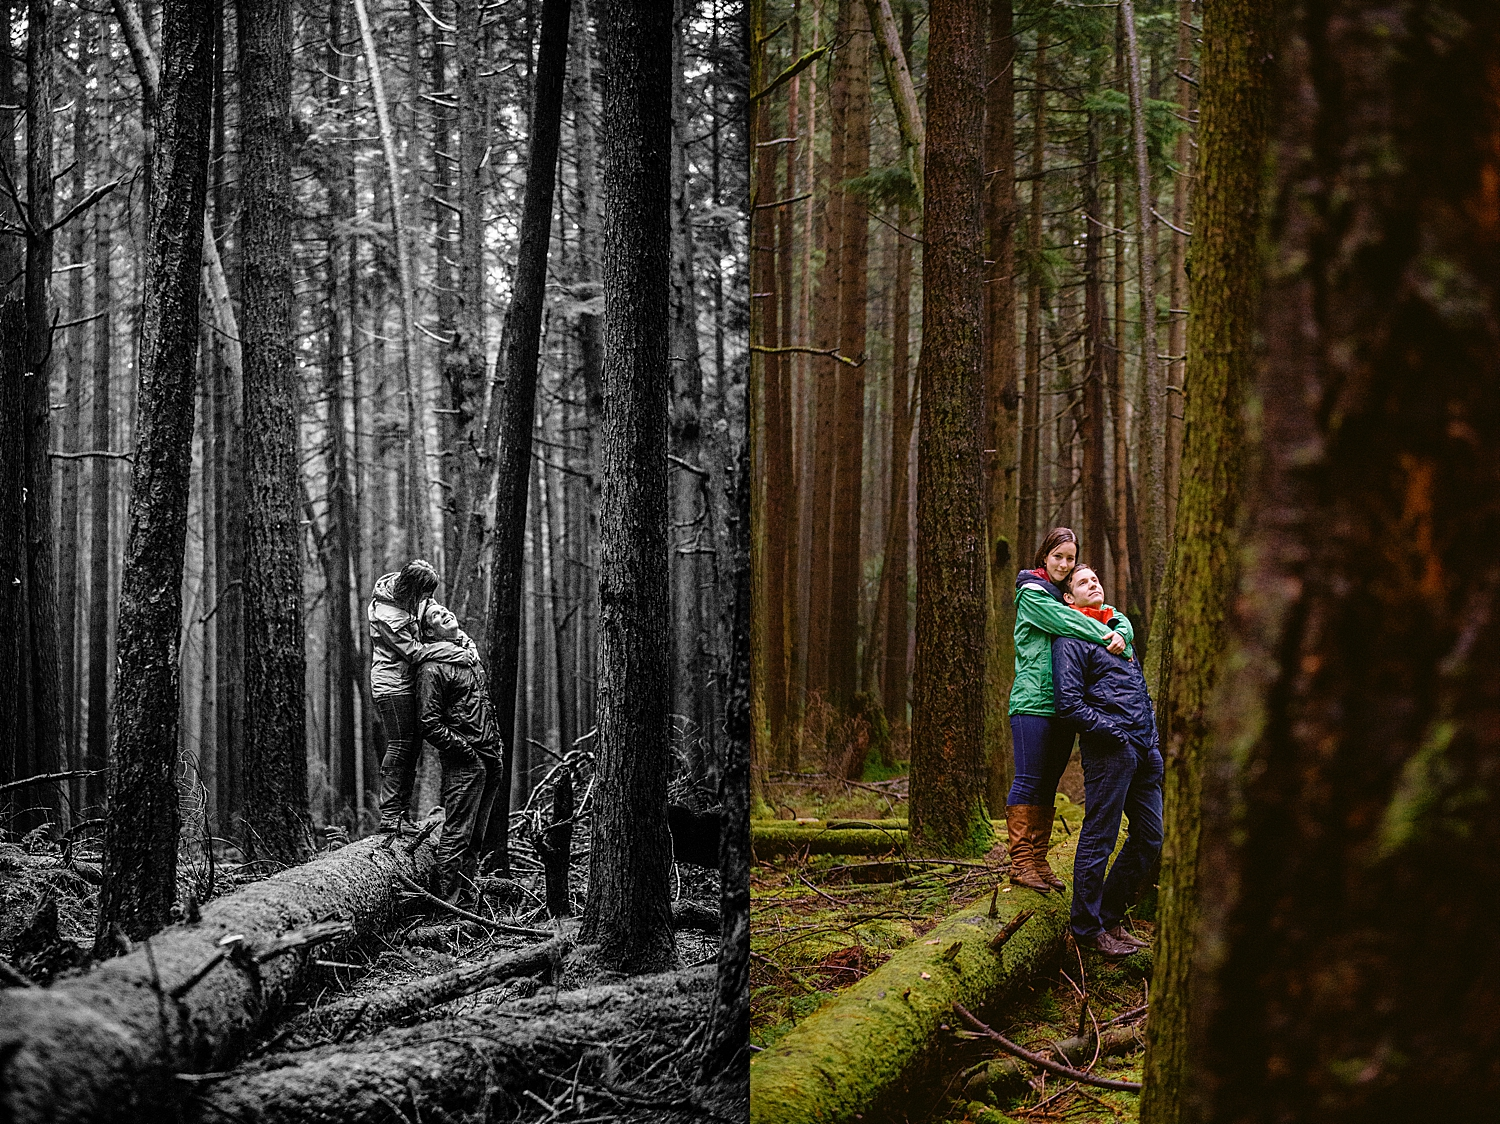 british columbia - pacific spirit park - engagement shoot - vancouver b.c.- maylies lang photography -07.jpg